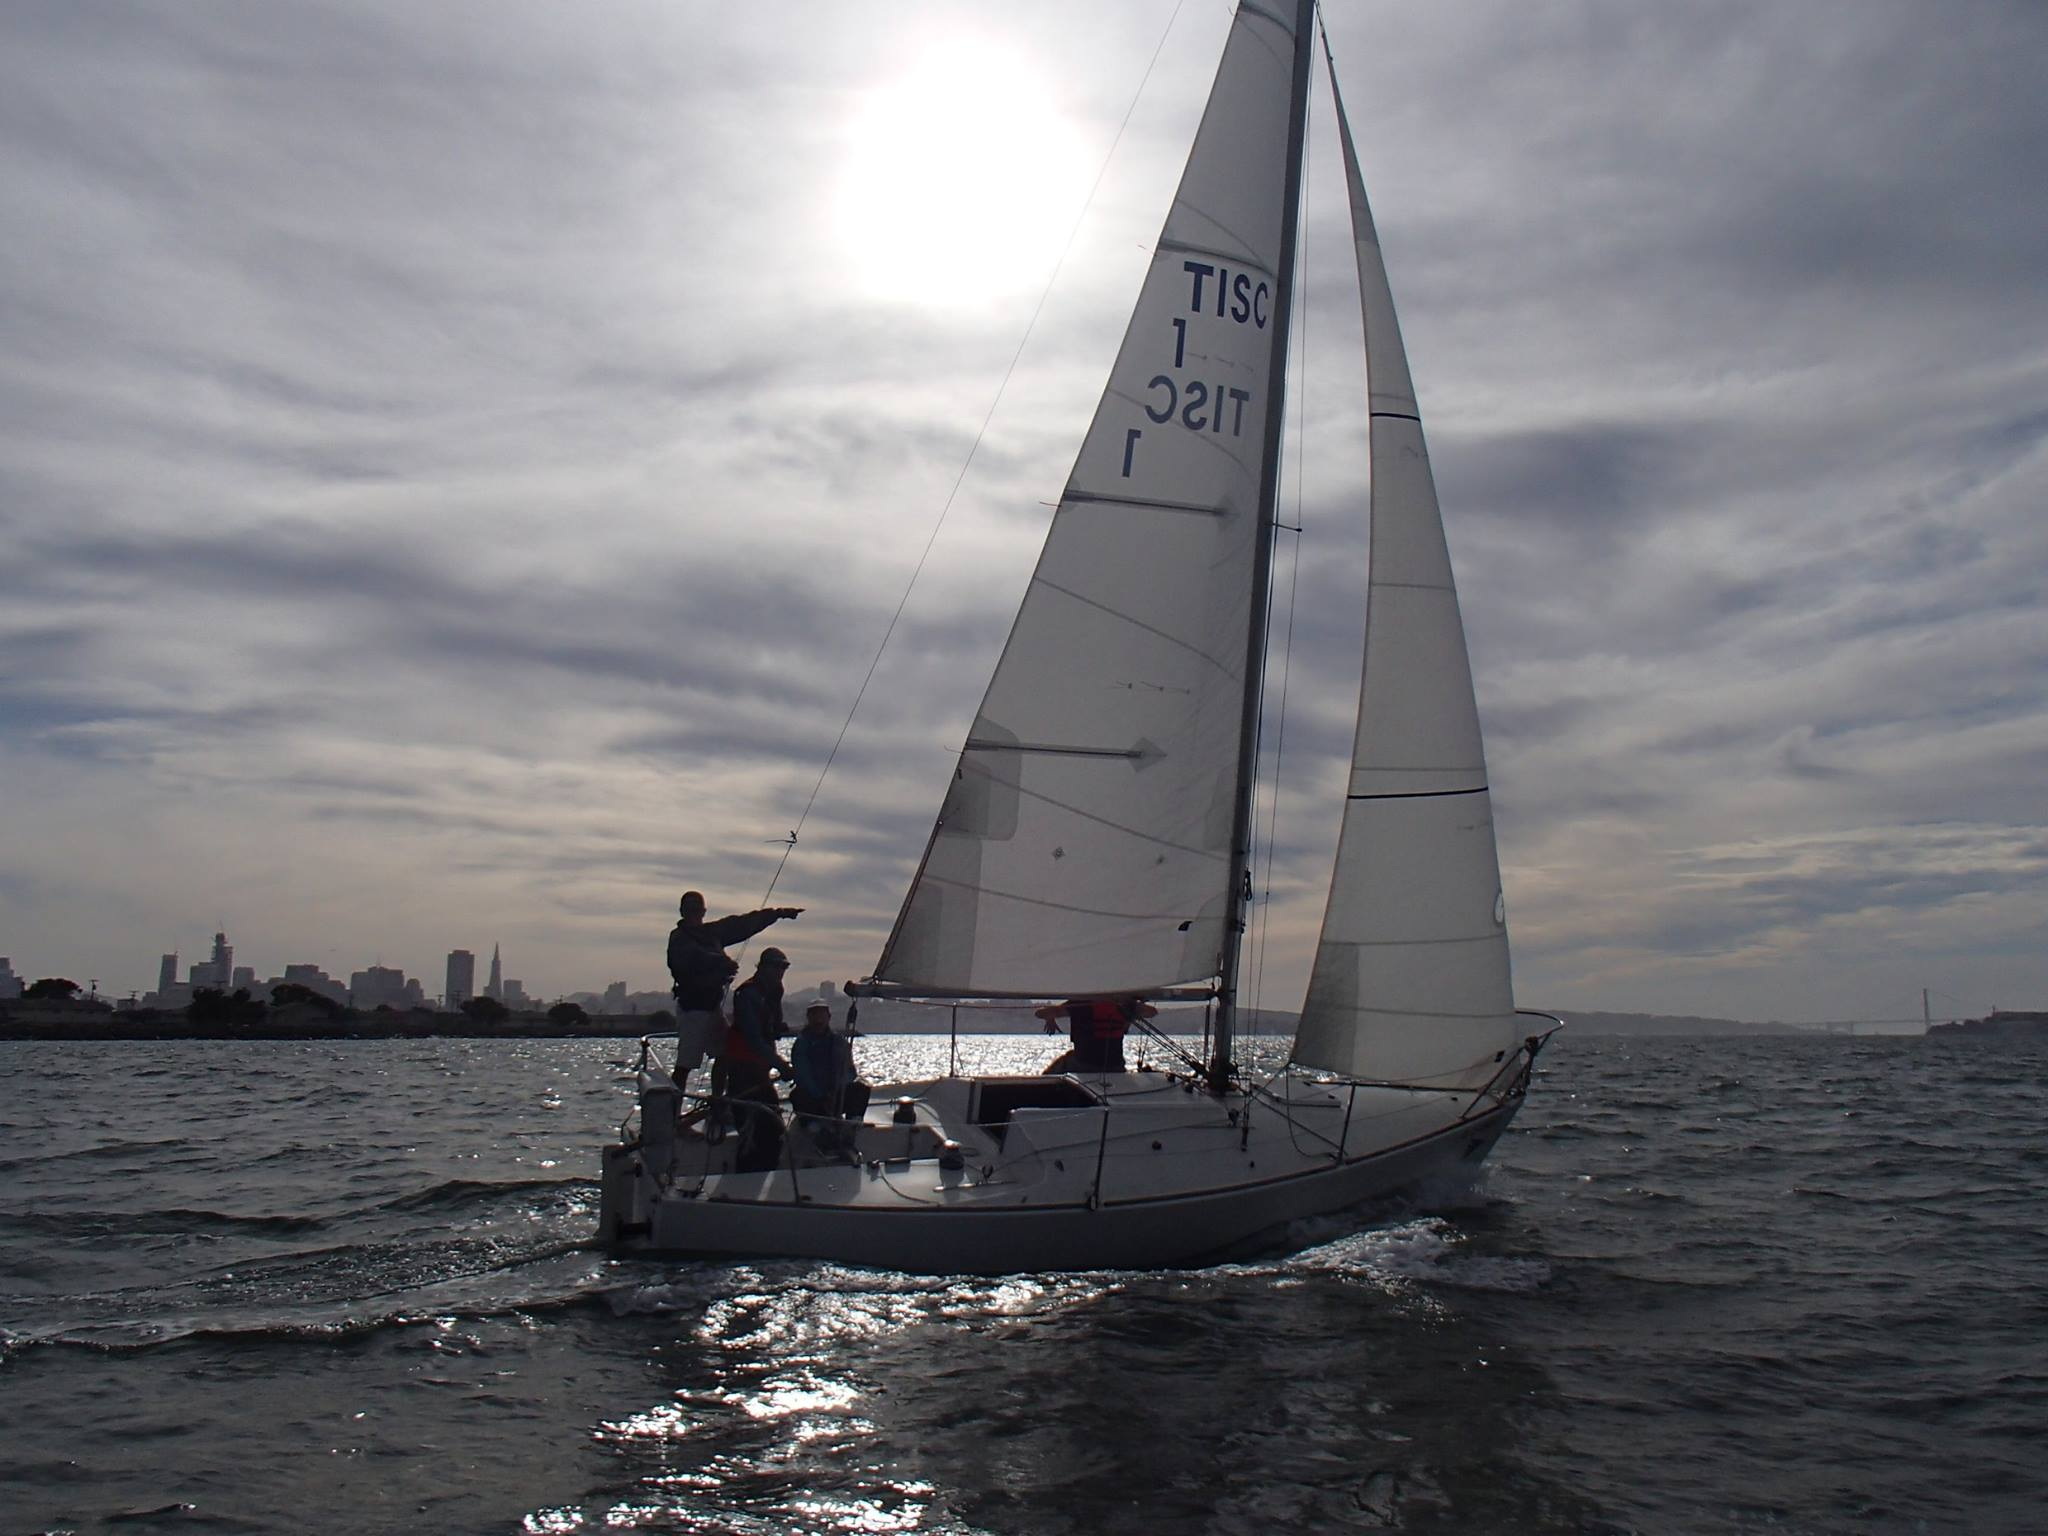 San Francisco Sailing League - Learn to sail with friends in SF